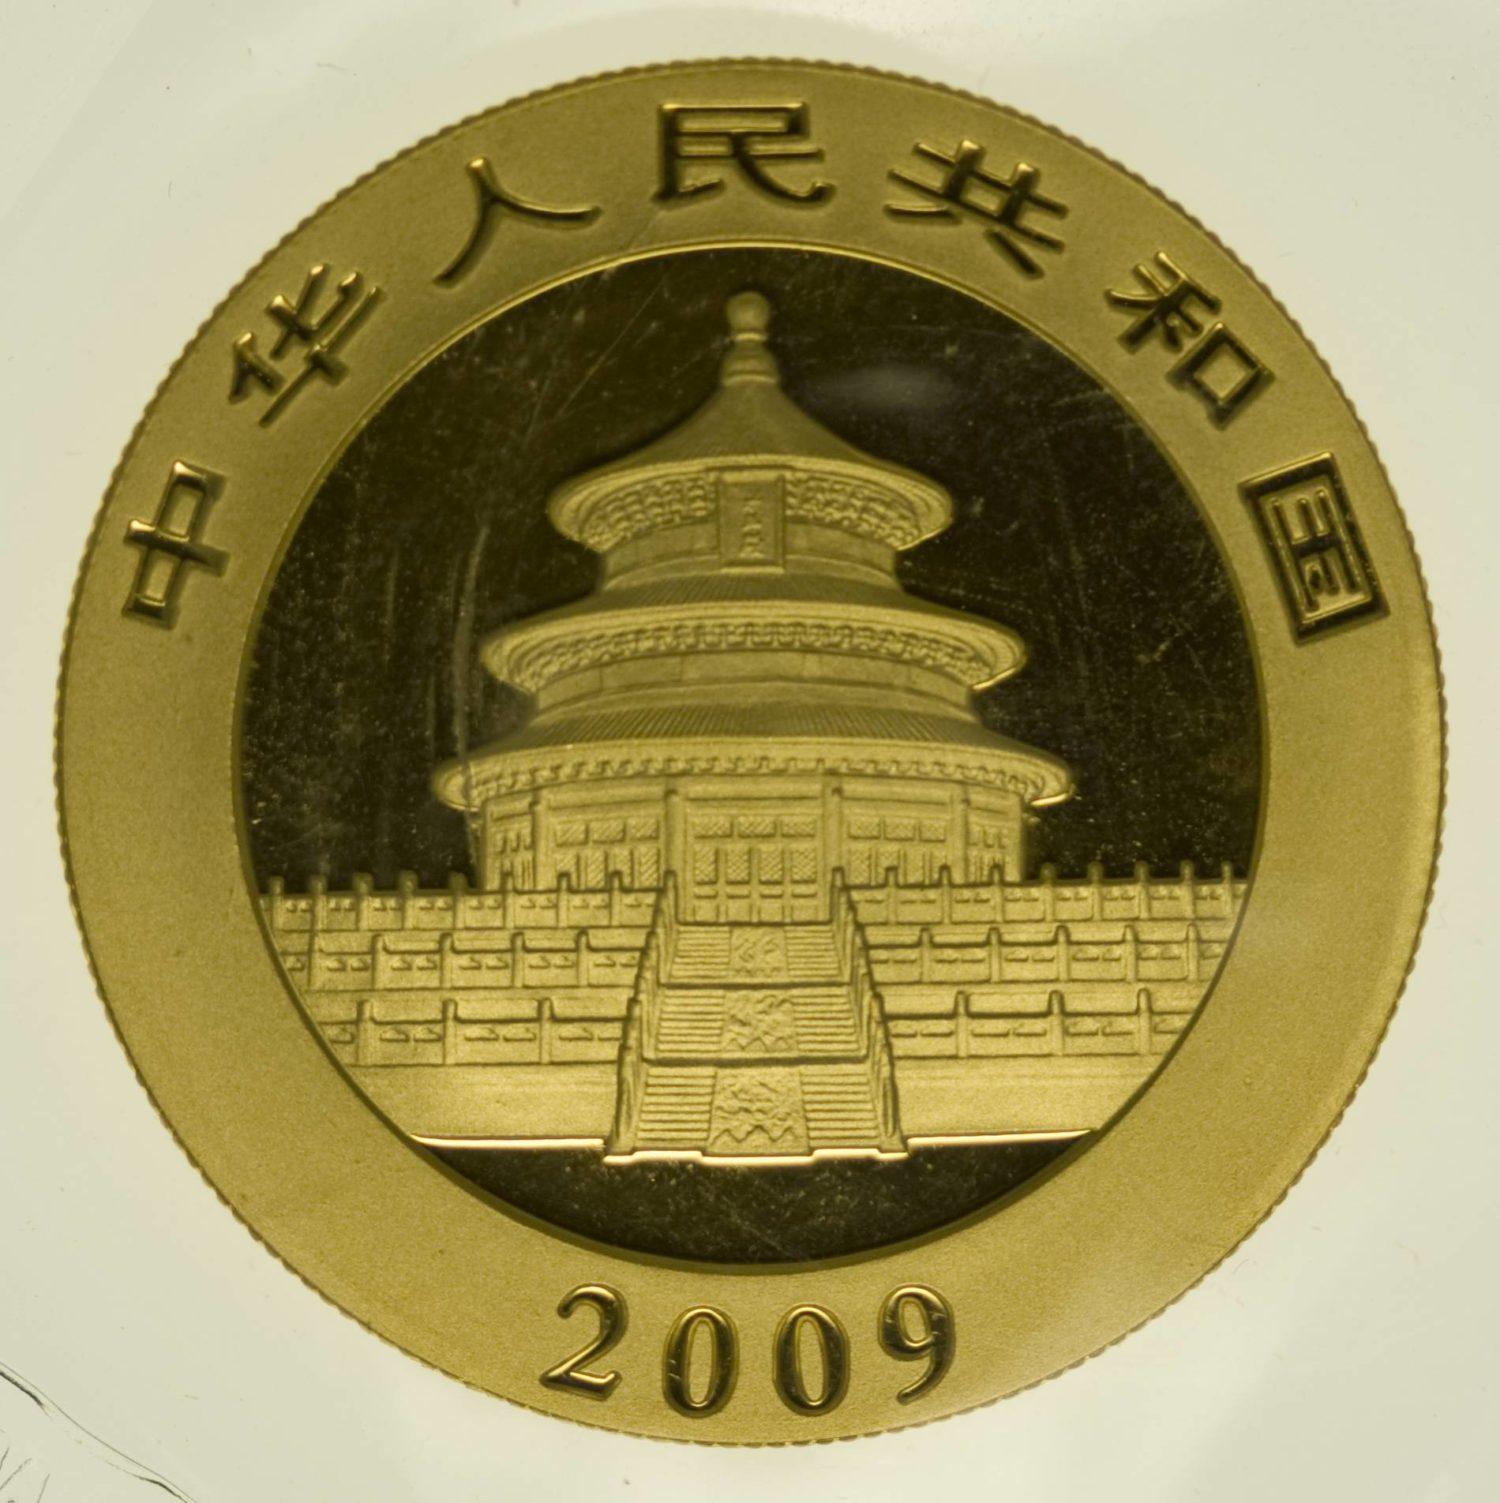 1 Unze Goldmünze China Panda 2009 500 Yuan 31,1 Gramm Gold RAR